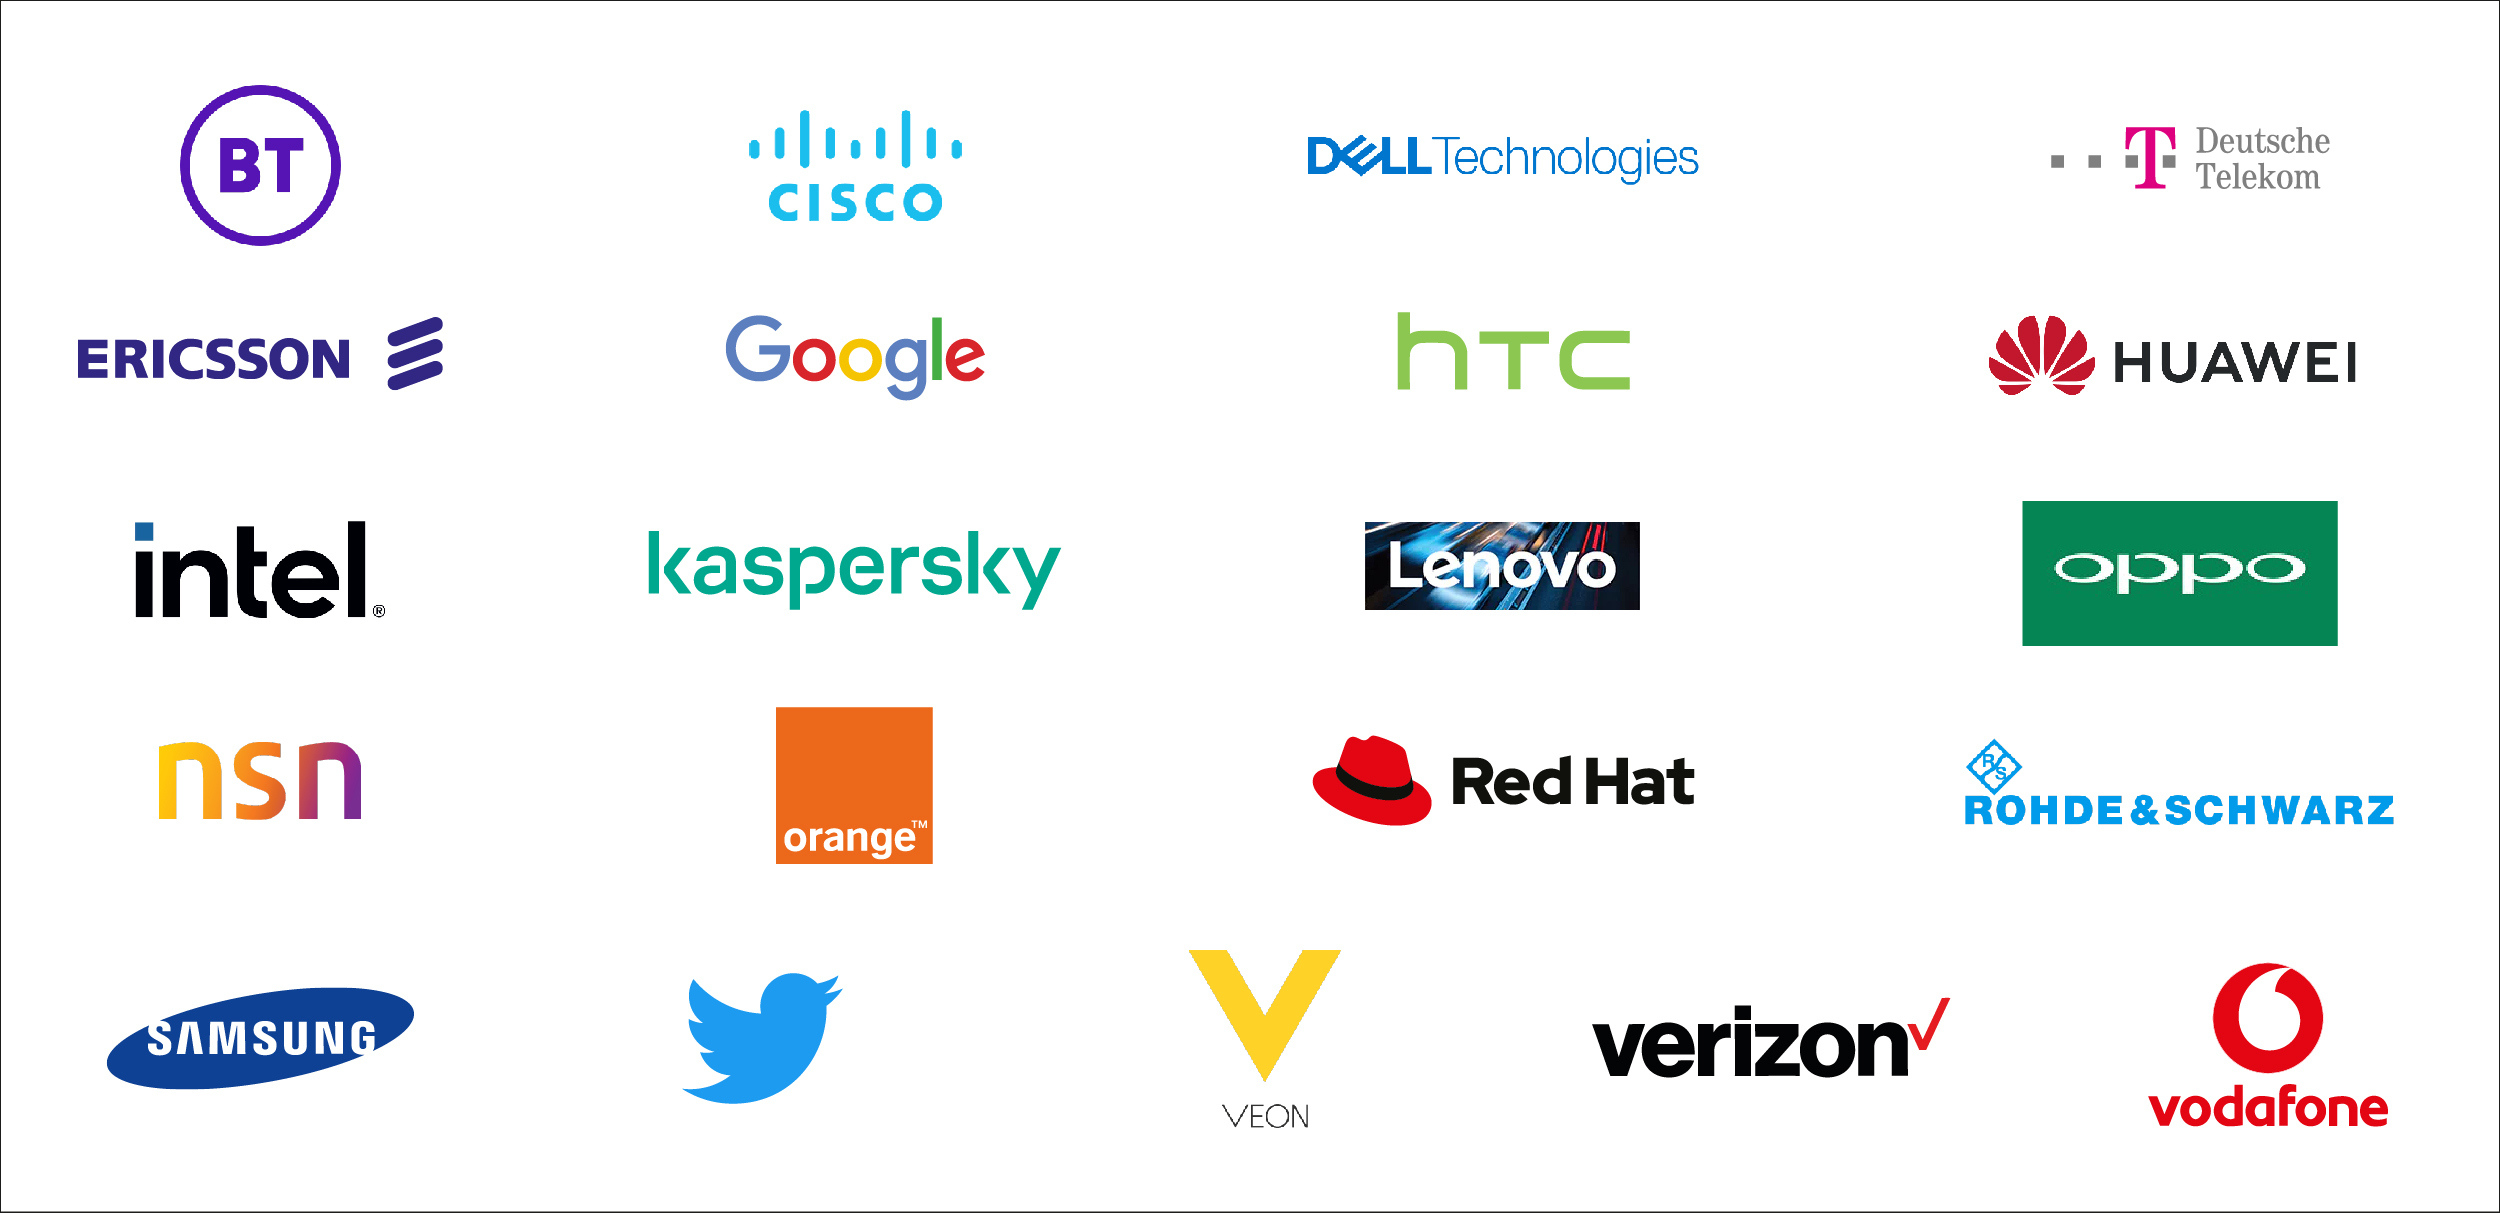 Confirmed Exhibitors for MWC Barcelona 2022